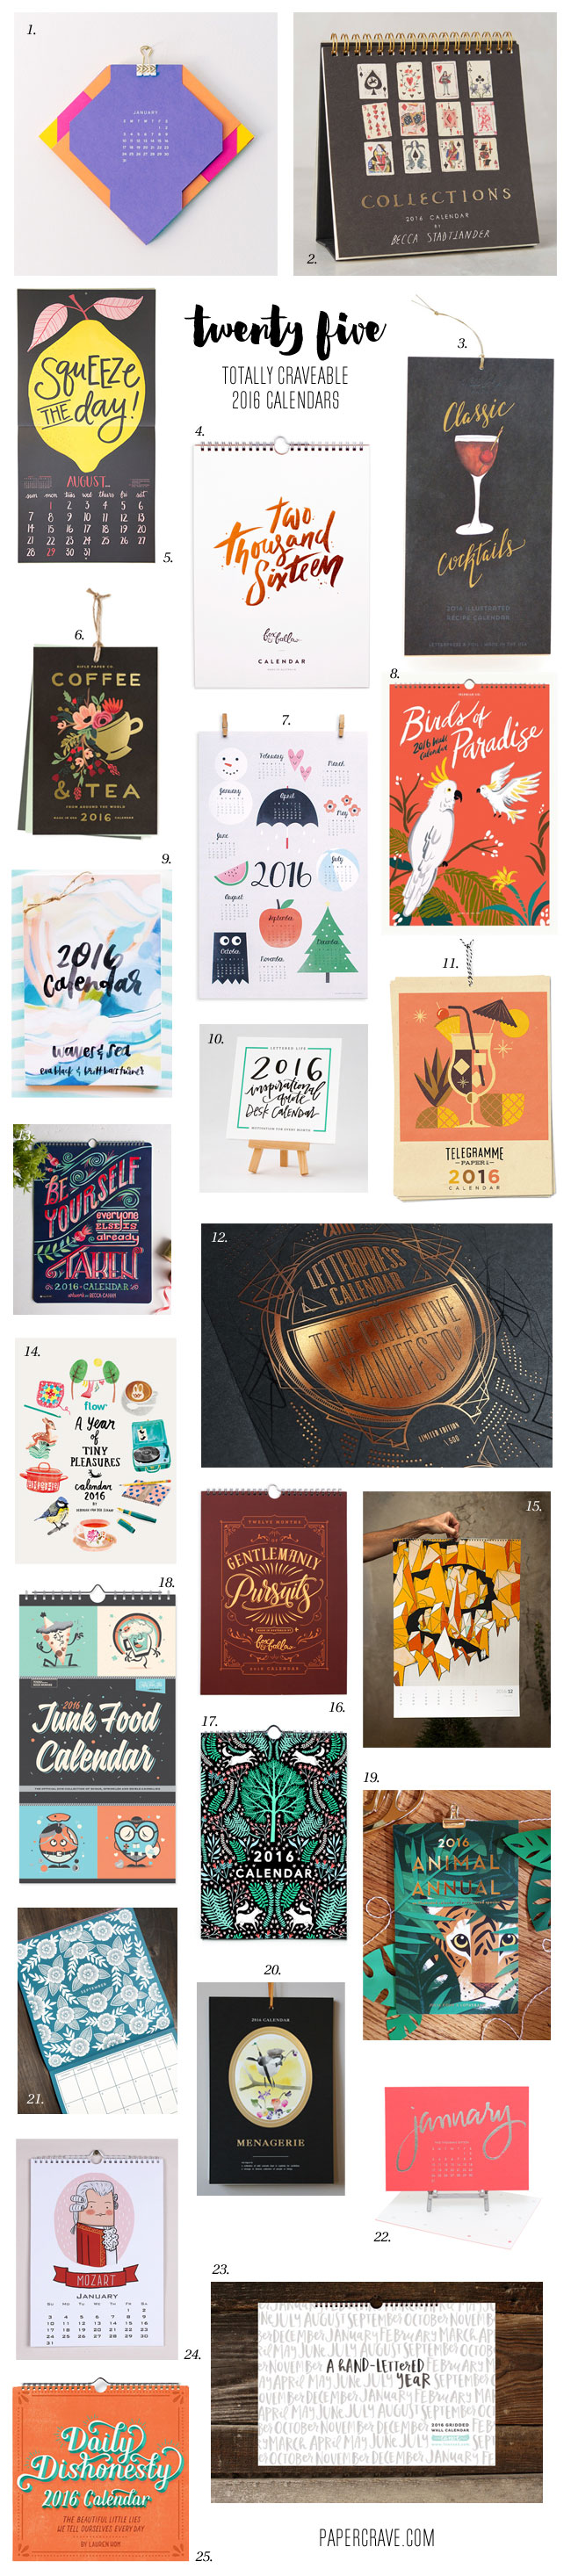 25 Totally Craveable 2016 Calendars